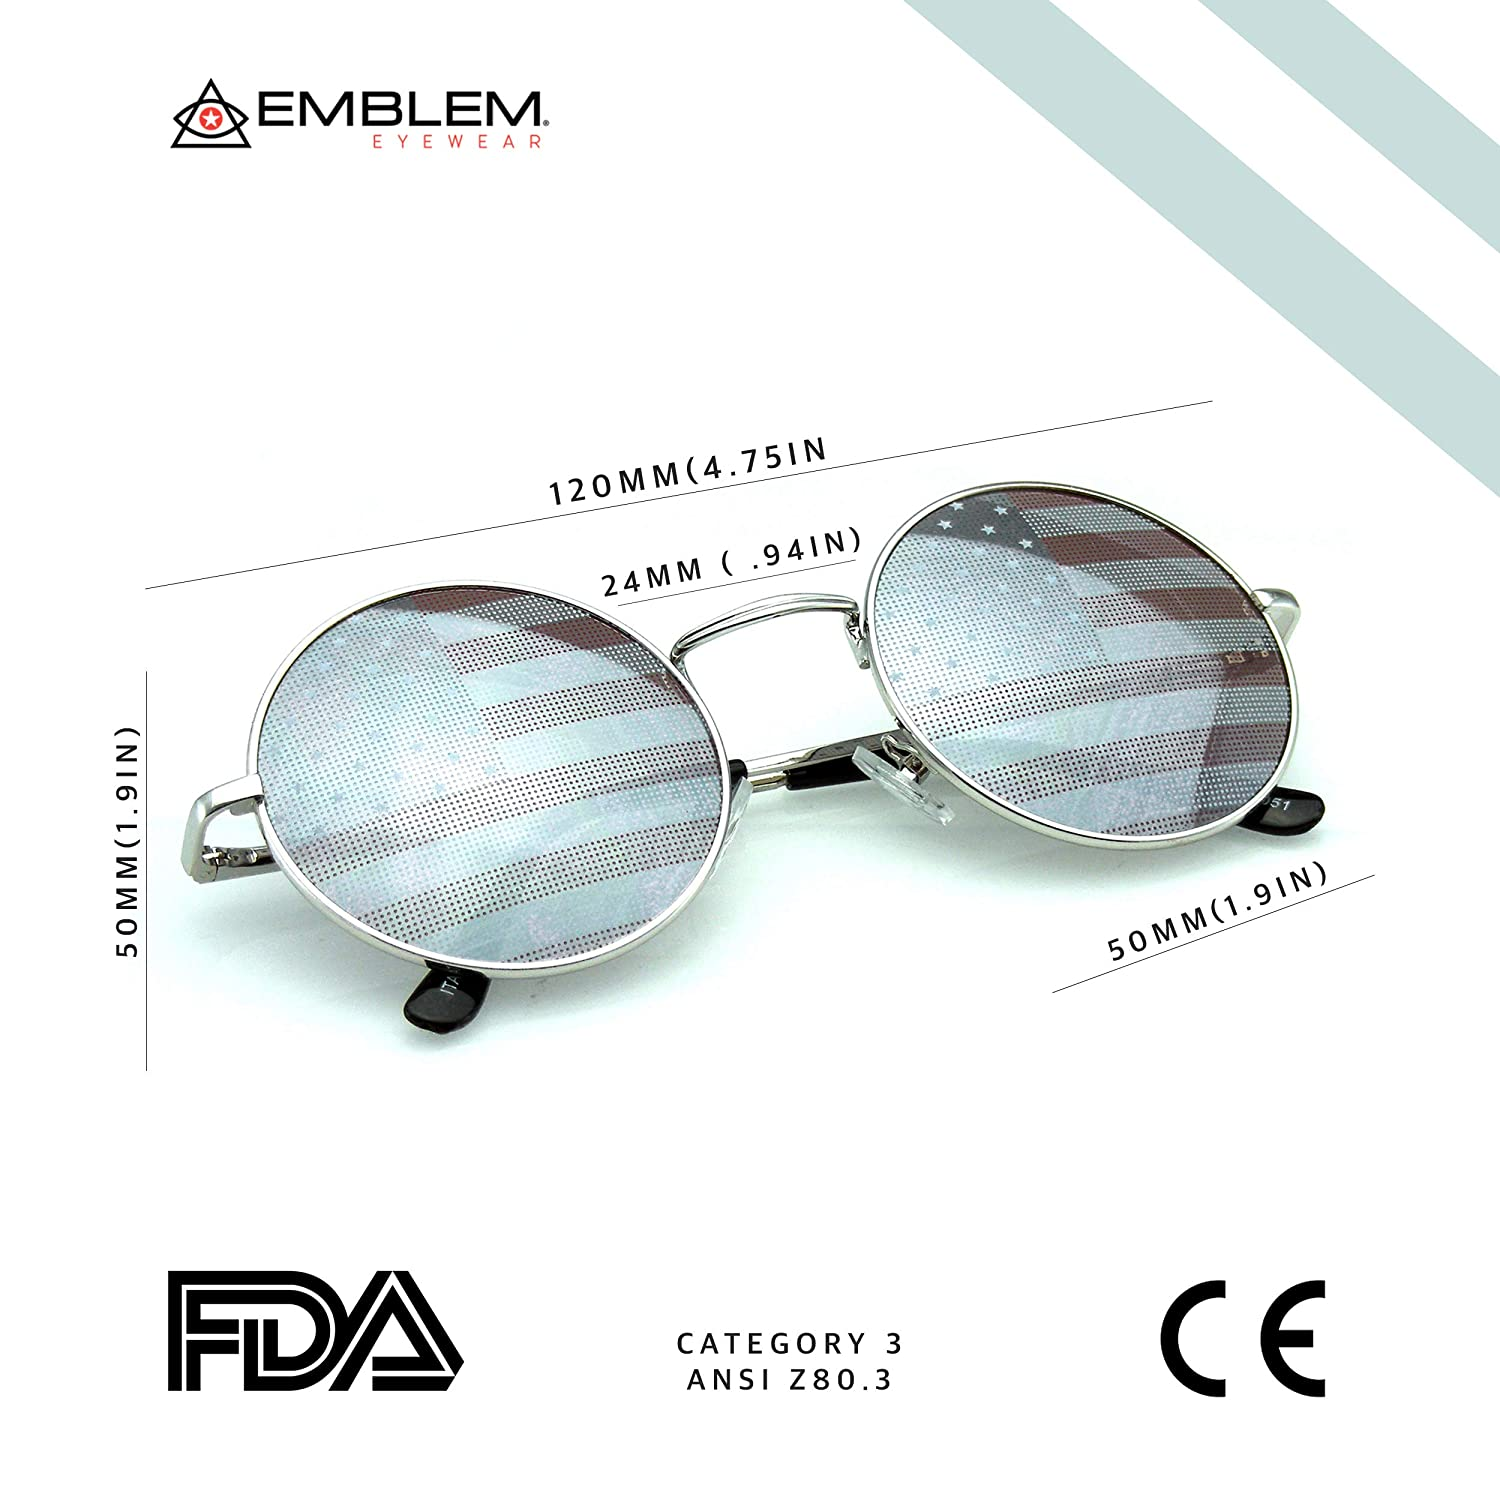 9cded55e4df Amazon.com  Emblem Eyewear - John Lennon Inspired Sunglasses Round Hippie  Shades Retro Colored Lenses (American Flag)  Clothing